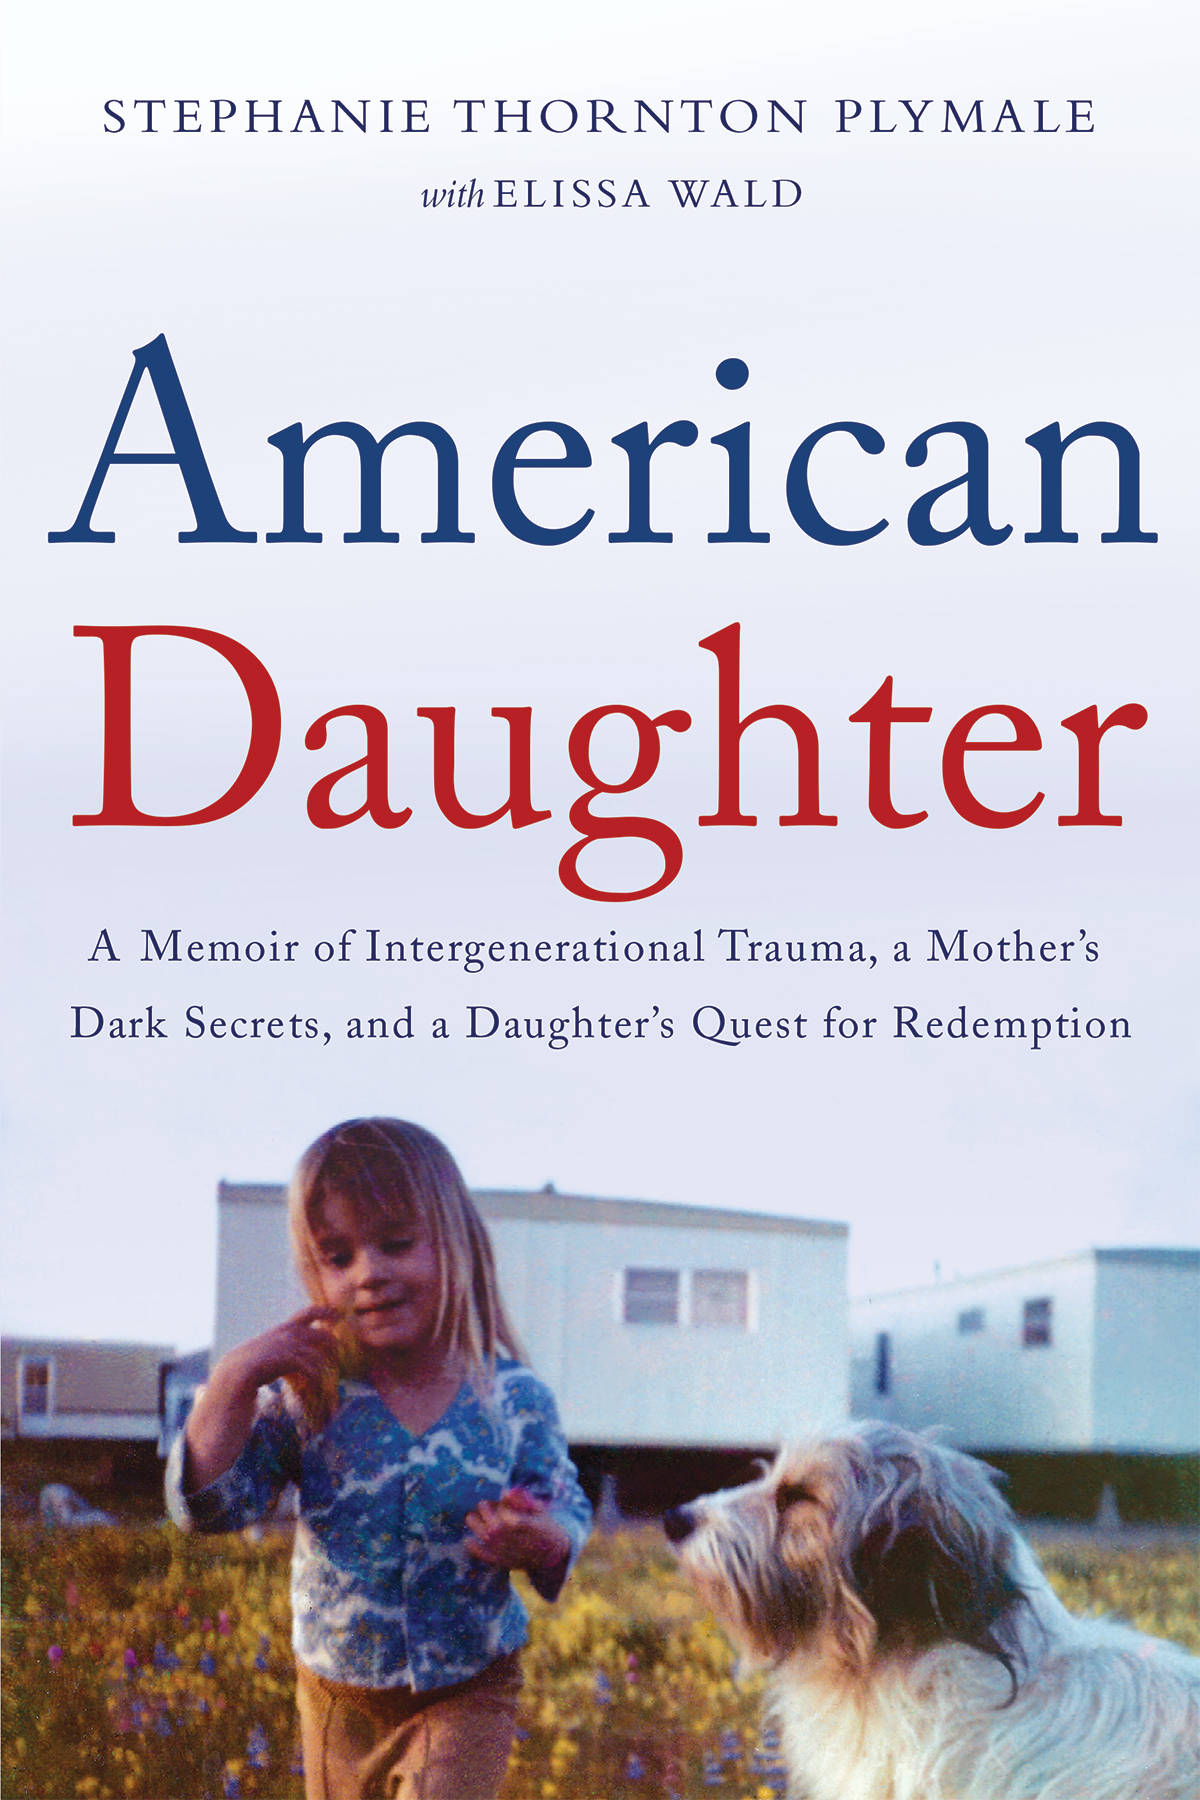 American Daughter: A Memoir of Intergenerational Trauma, a Mother's Dark Secrets, and a Daughter's Quest for Redemption